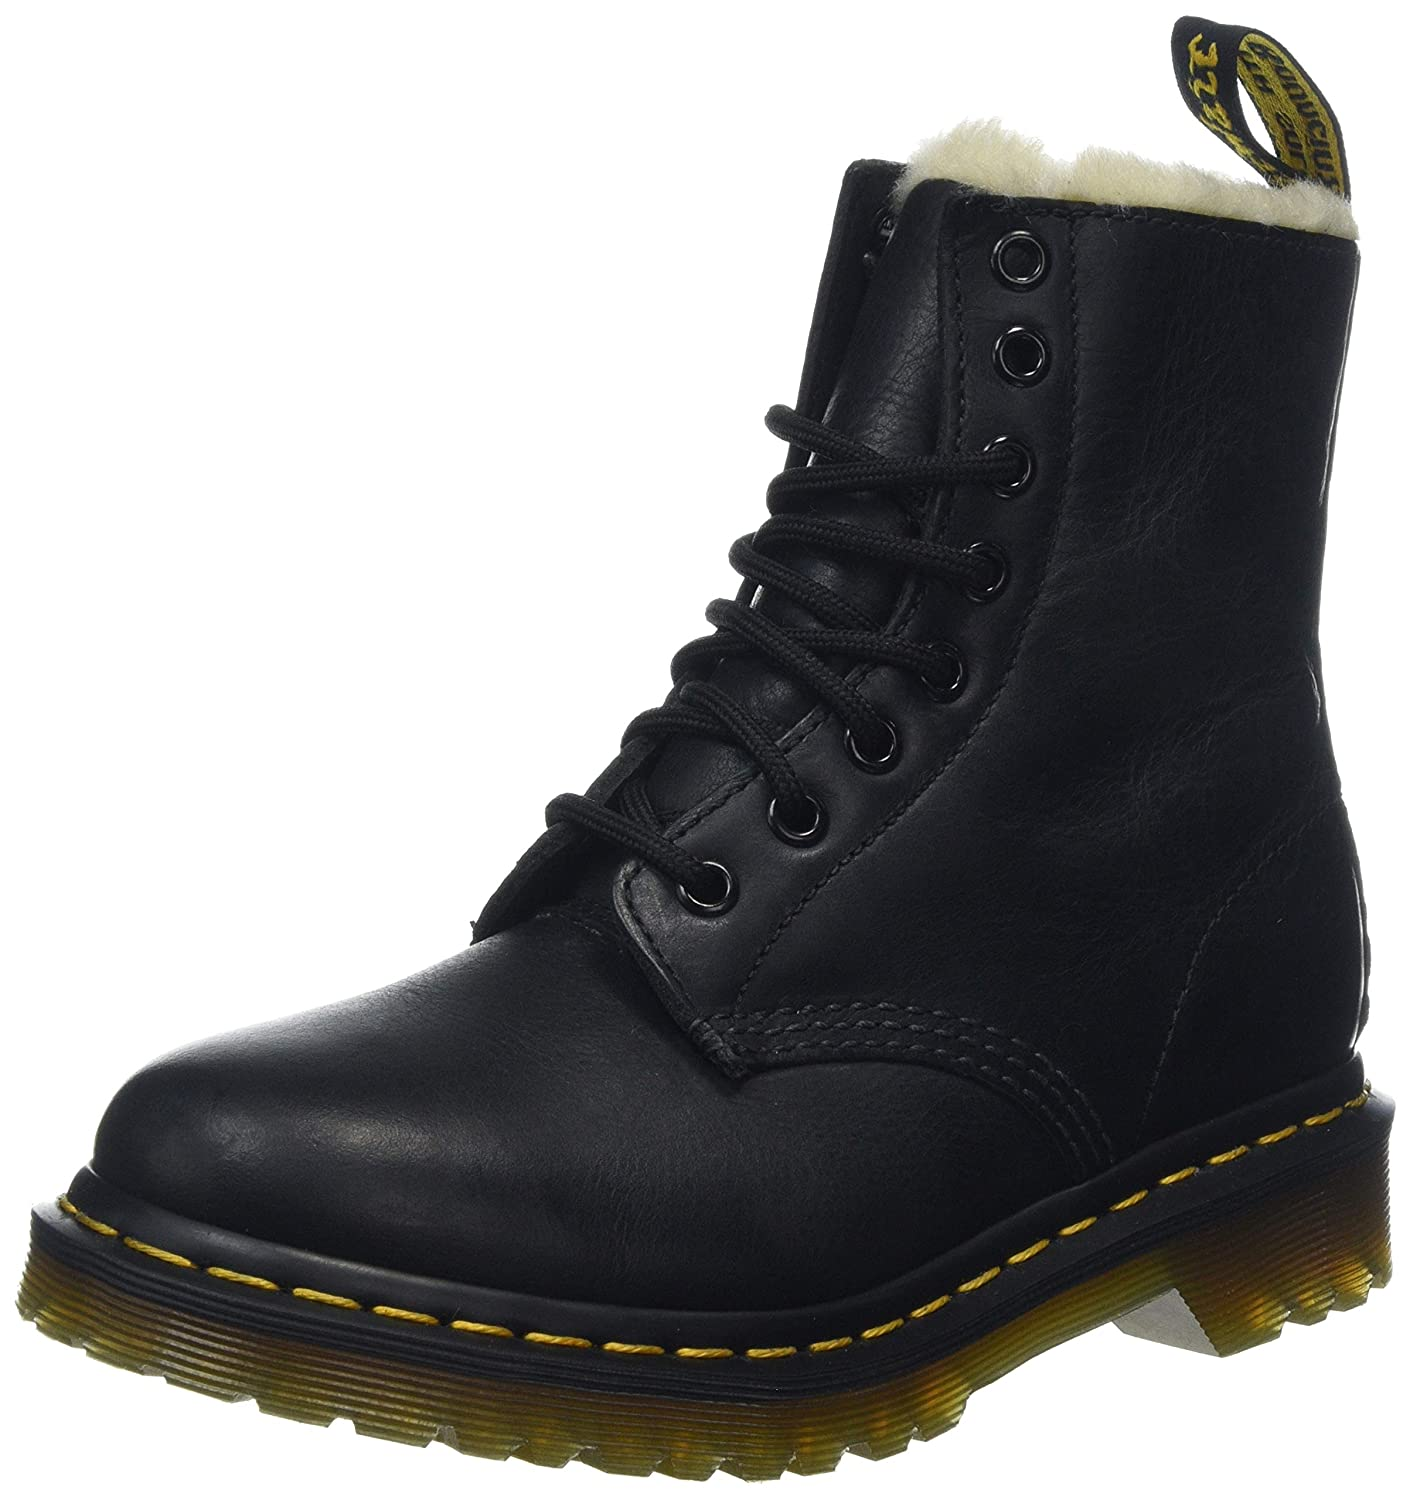 sneakers biggest discount new lifestyle Dr. Martens Women's Serena Burnished Wyoming Leather Fashion Boot